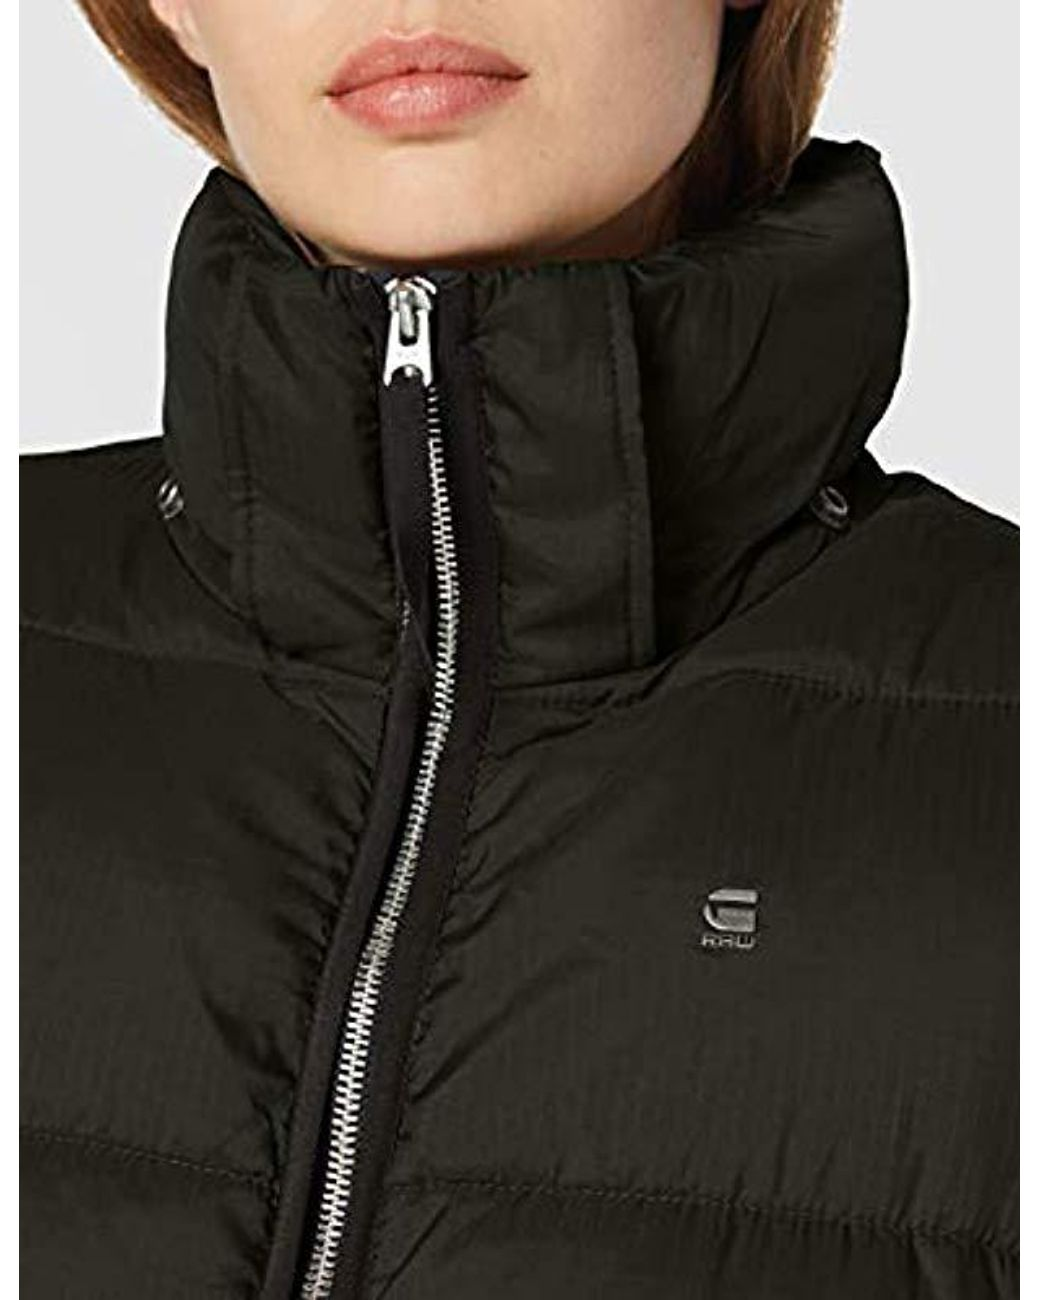 G Star RAW Meefic Sundu Quilted Hooded Overshirt Jacket in